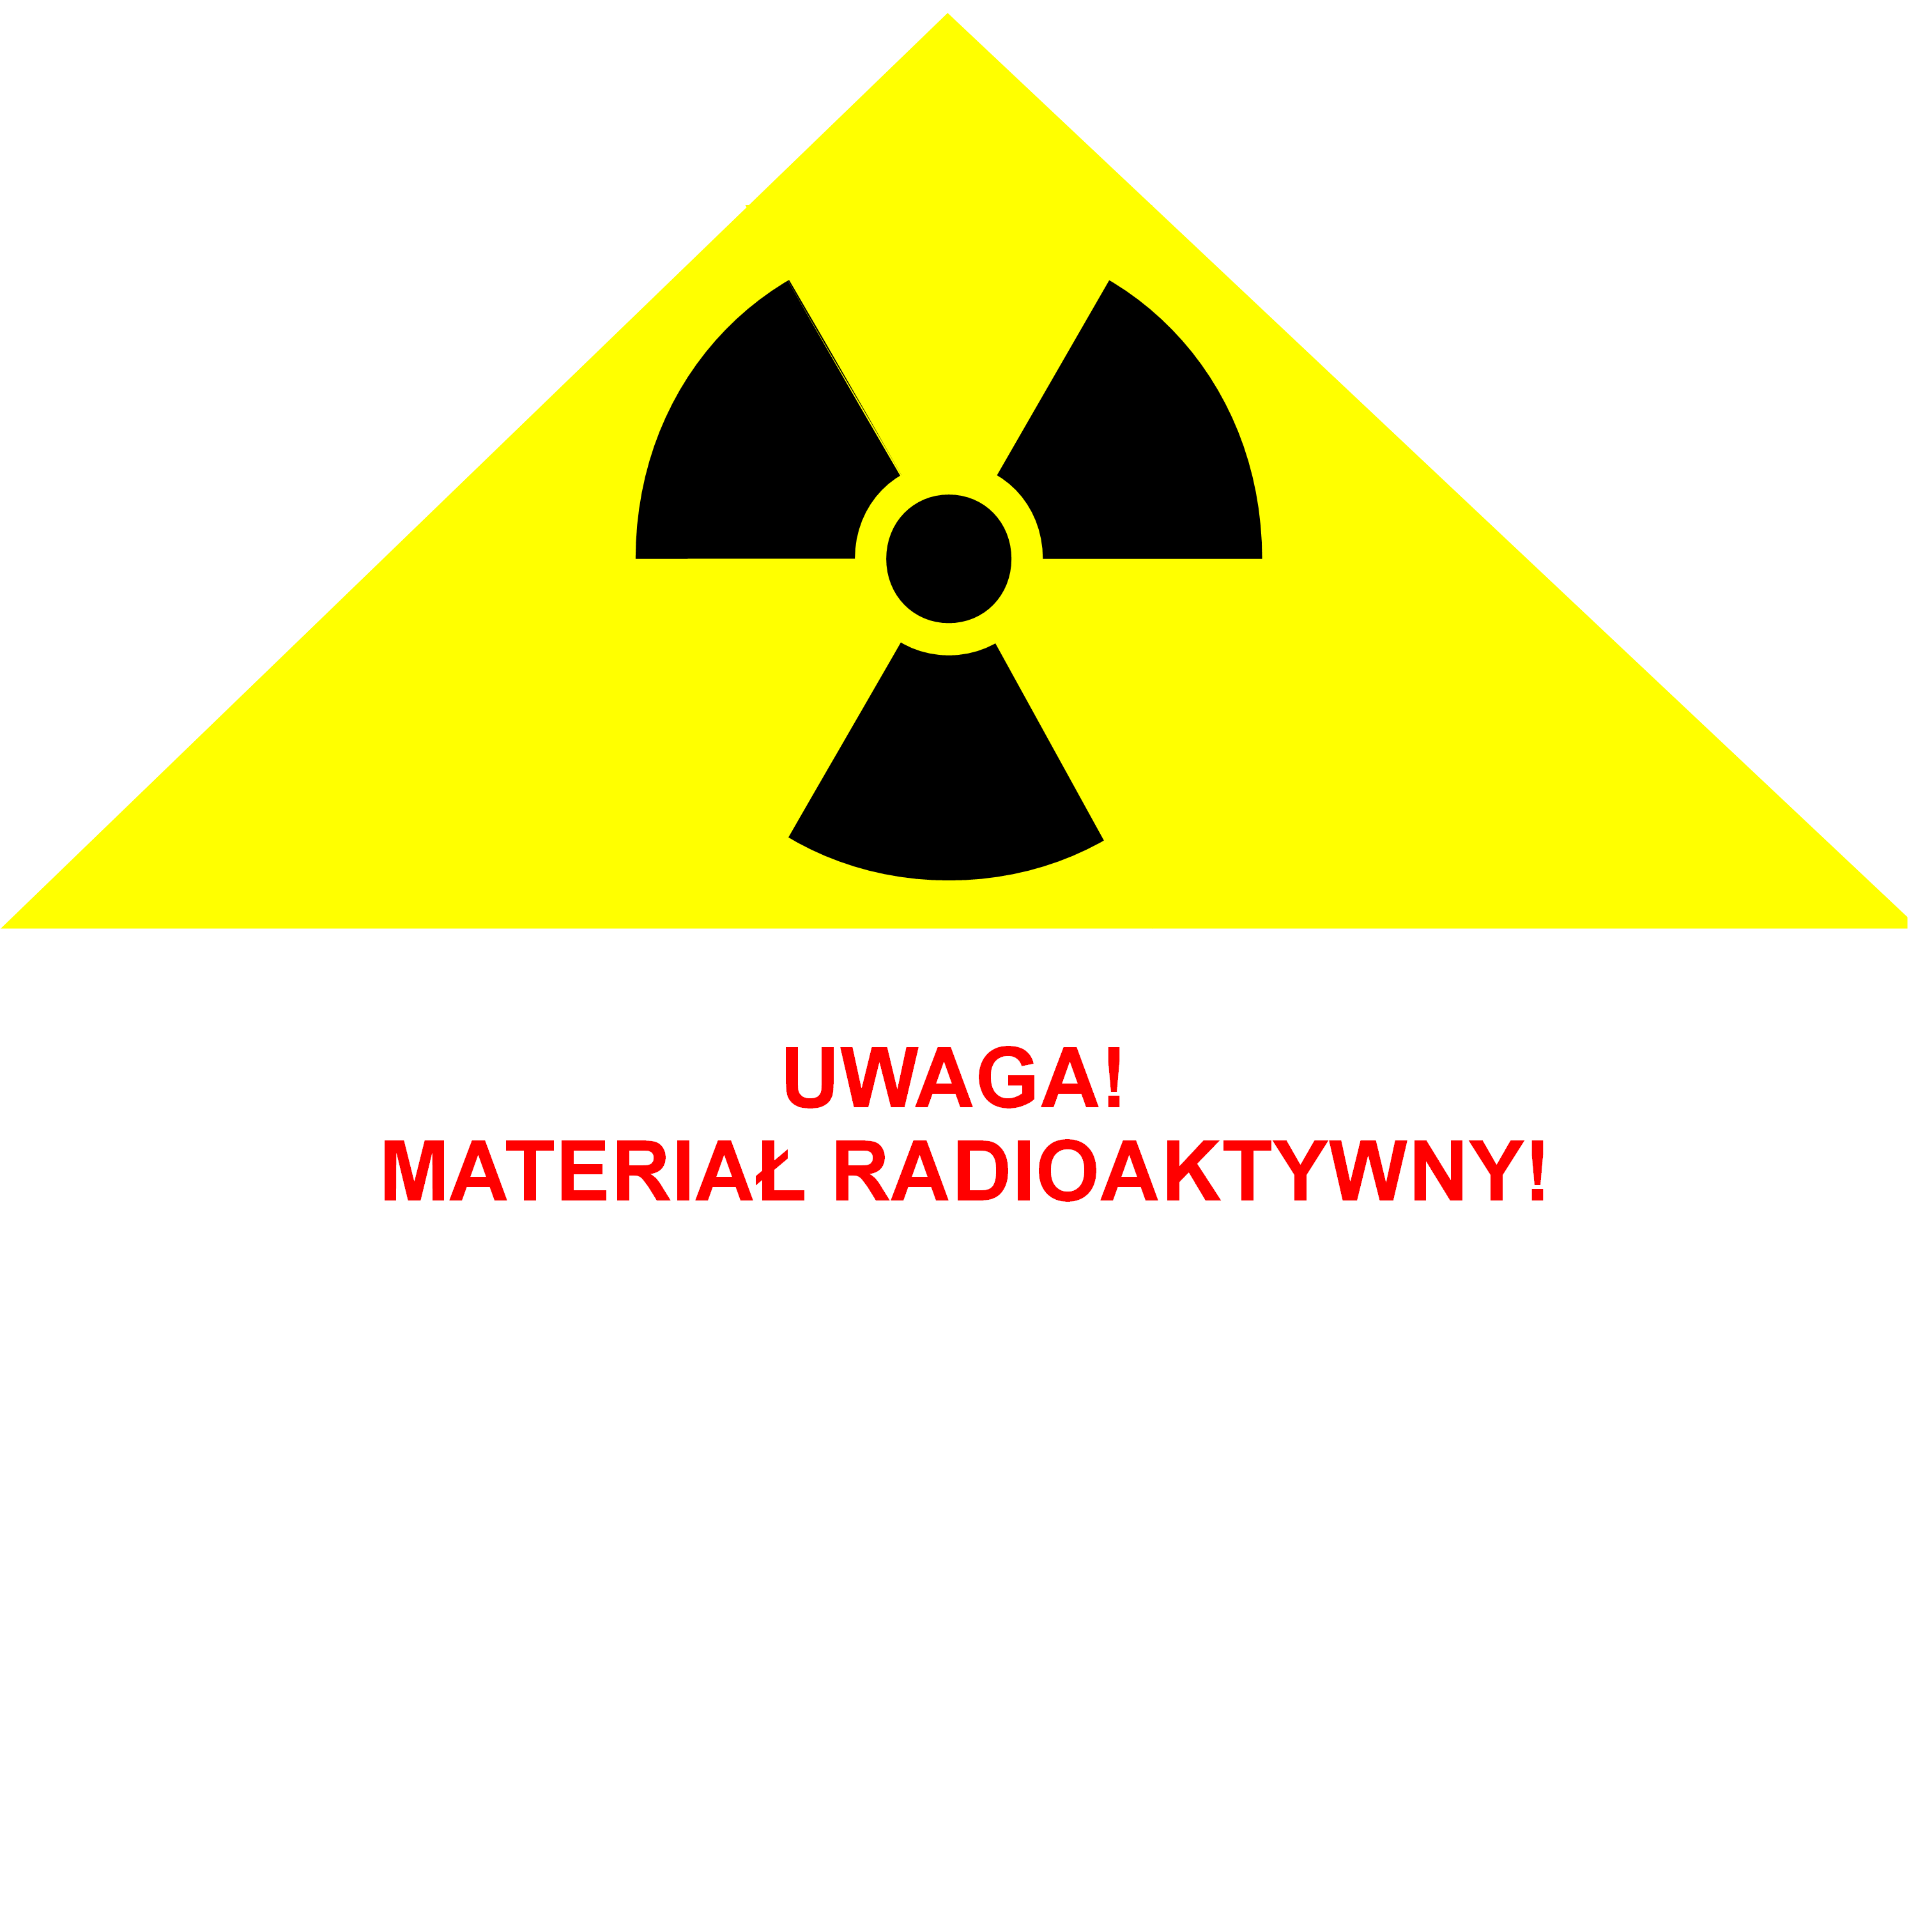 International sign warning of ionizing radiation